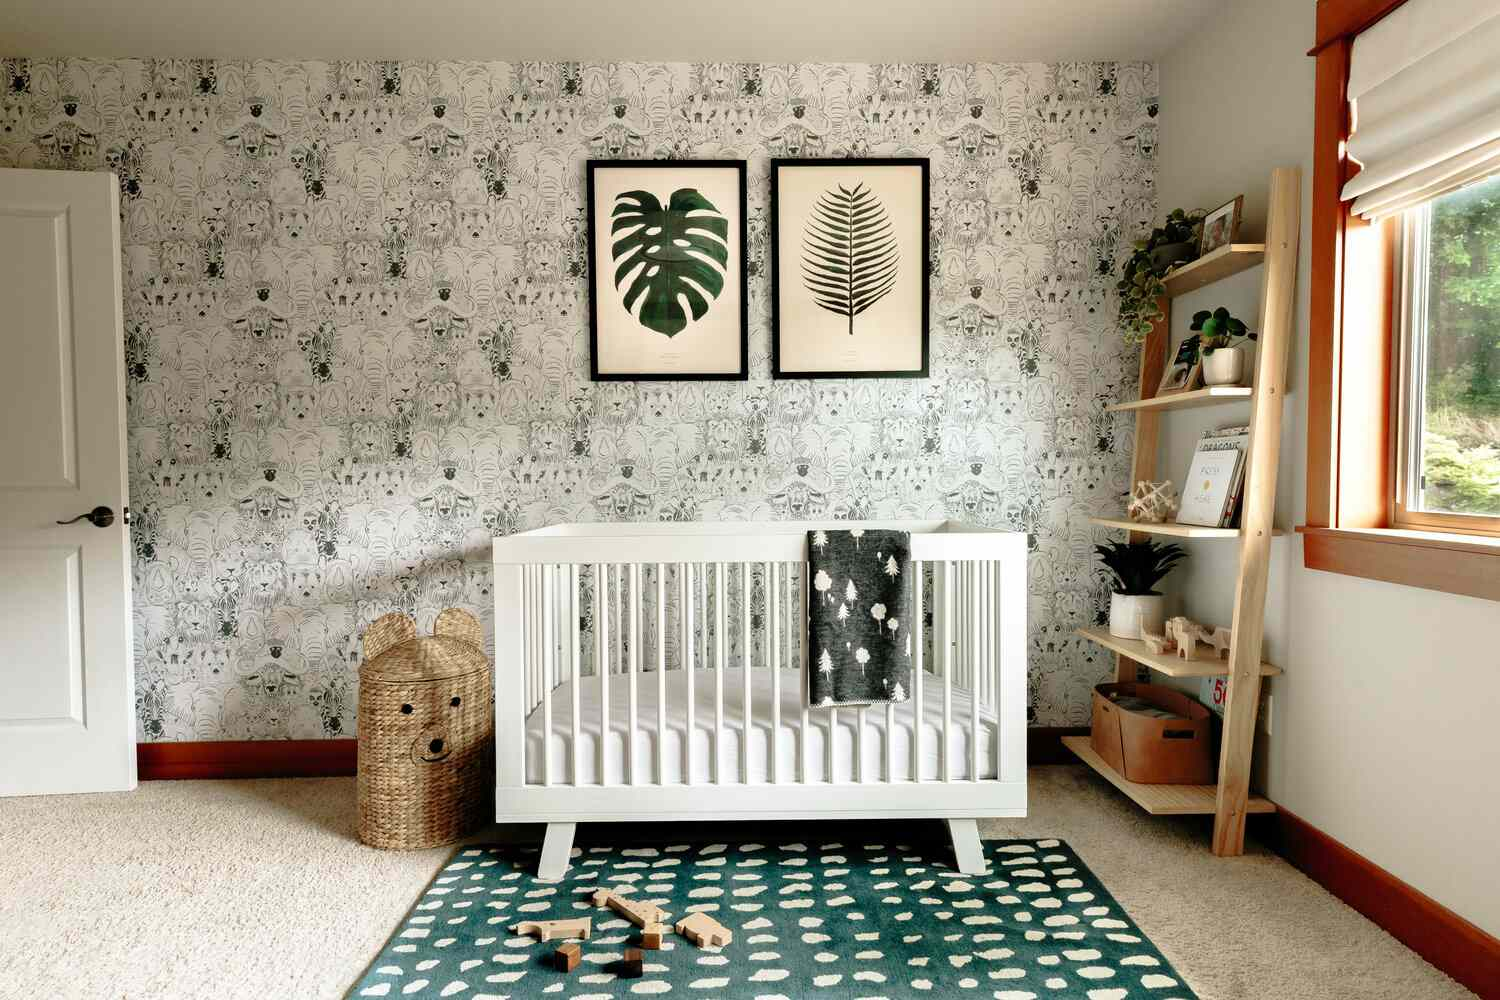 nursery with green pattern wallpaper and leaf art prints